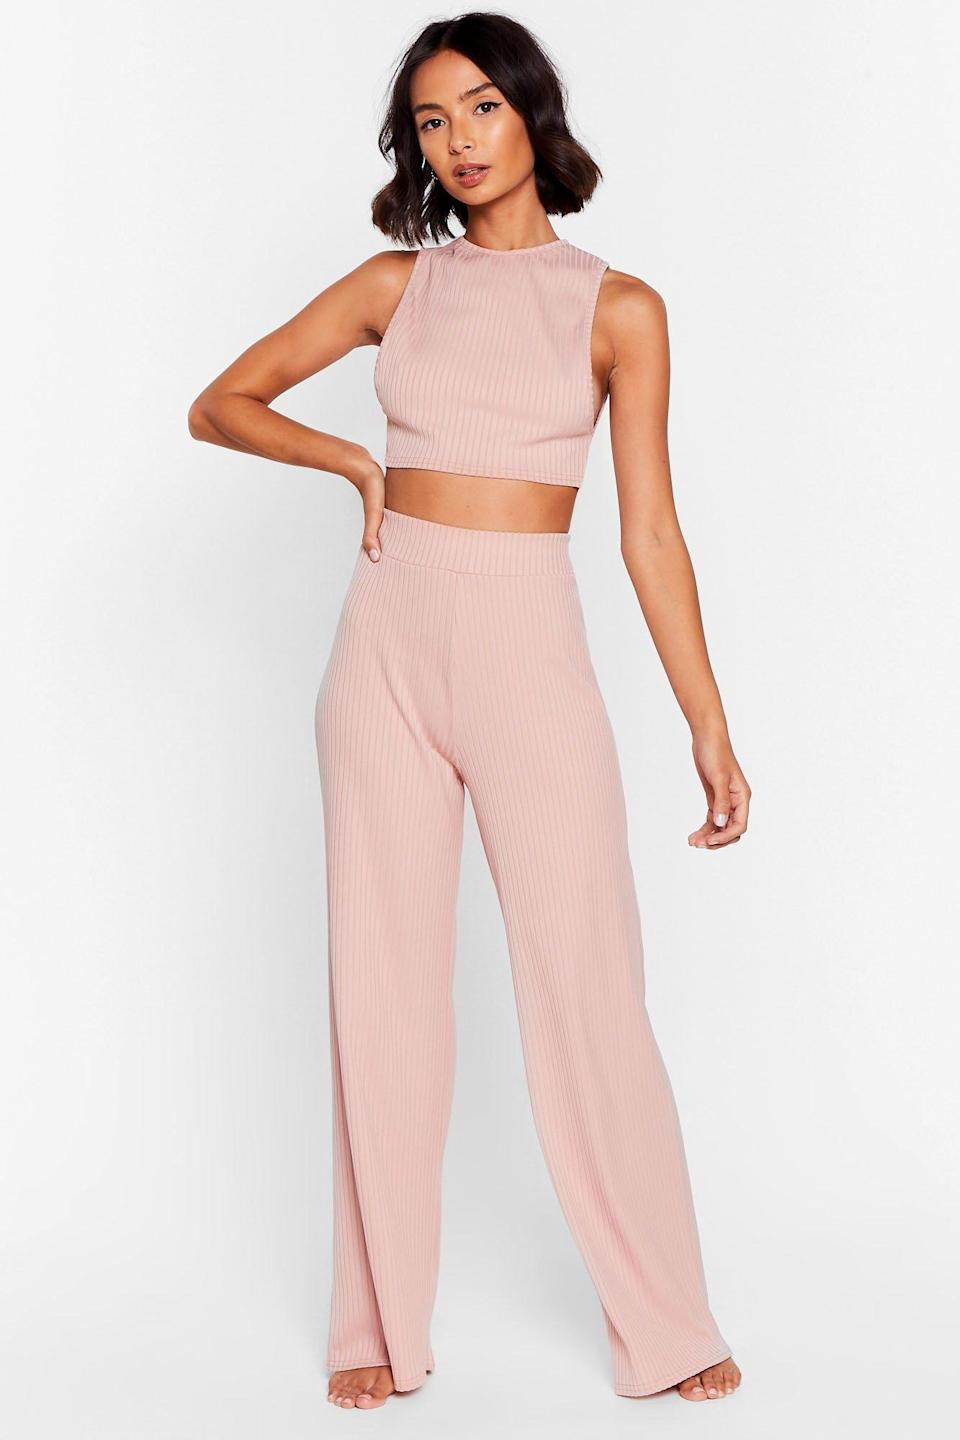 "<br><br><strong>NastyGal</strong> Side Show Crop Top and Wide-Leg Pants Lounge Set, $, available at <a href=""https://go.skimresources.com/?id=30283X879131&url=https%3A%2F%2Fwww.nastygal.com%2Fside-show-crop-top-and-wide-leg-pants-lounge-set%2FAGG51629.html%3Fcolor%3D107"" rel=""nofollow noopener"" target=""_blank"" data-ylk=""slk:NastyGal"" class=""link rapid-noclick-resp"">NastyGal</a>"